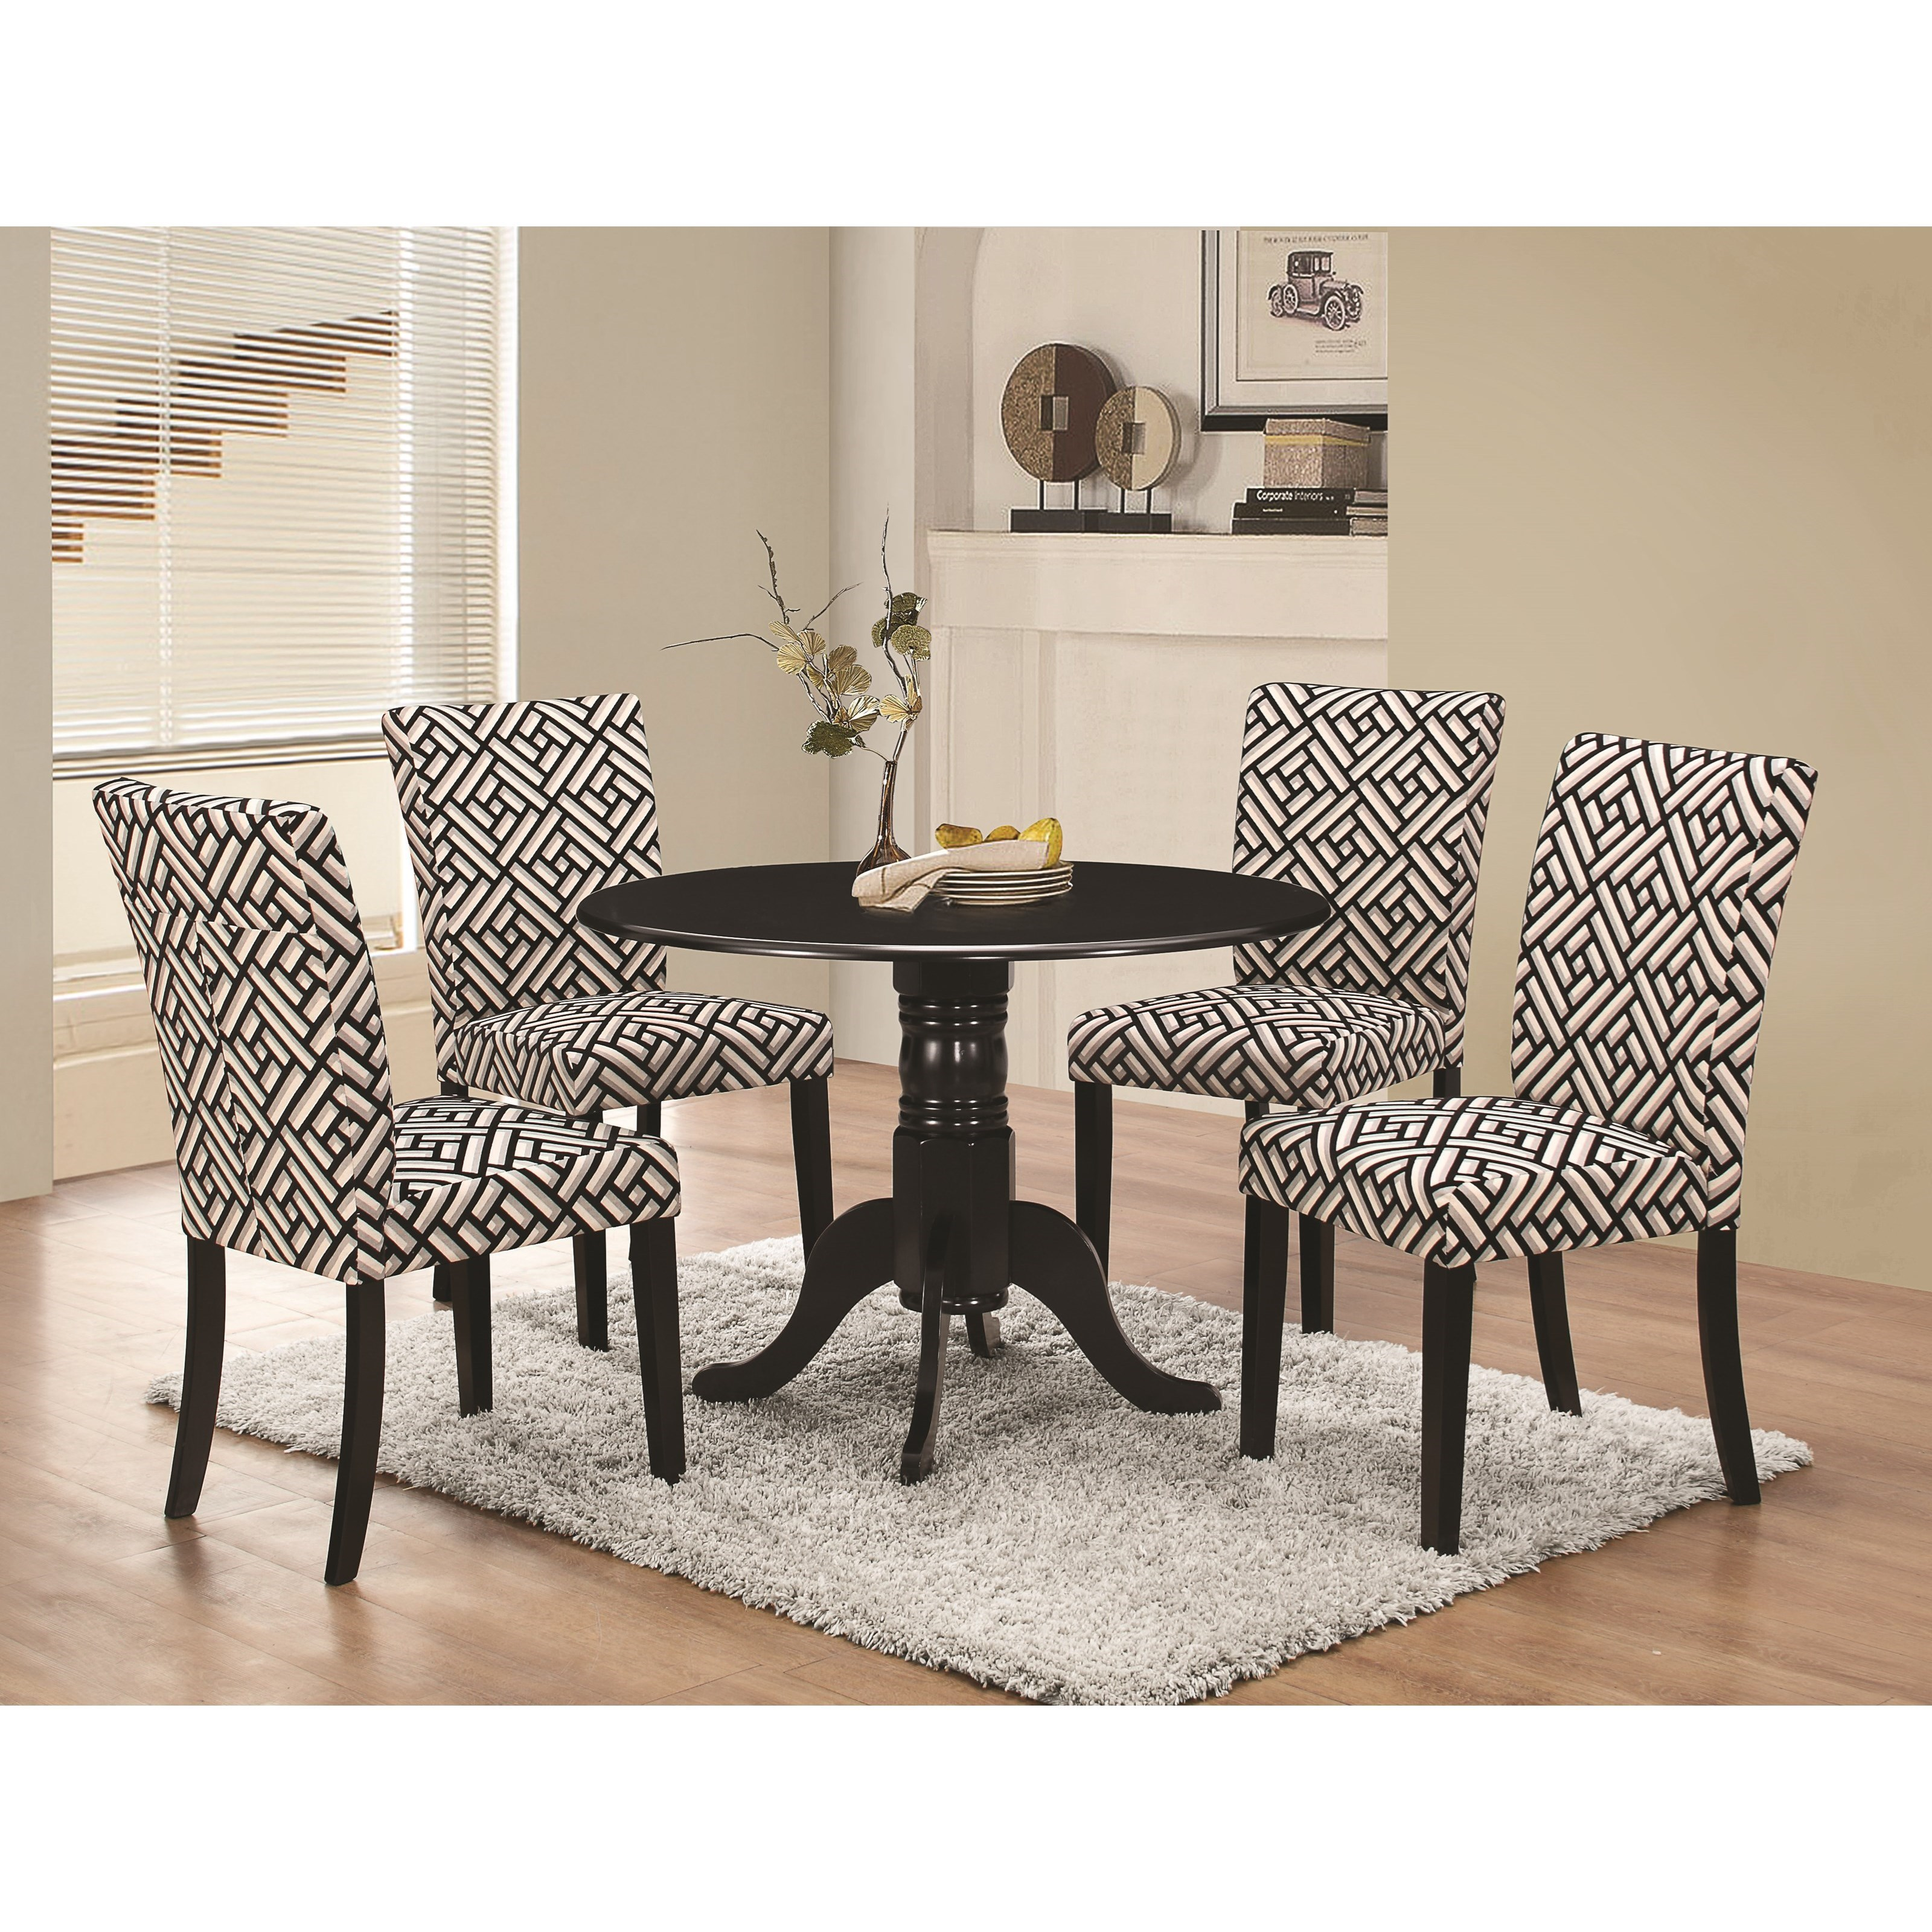 coaster allston round pedestal 5 pc table & chair set - value city